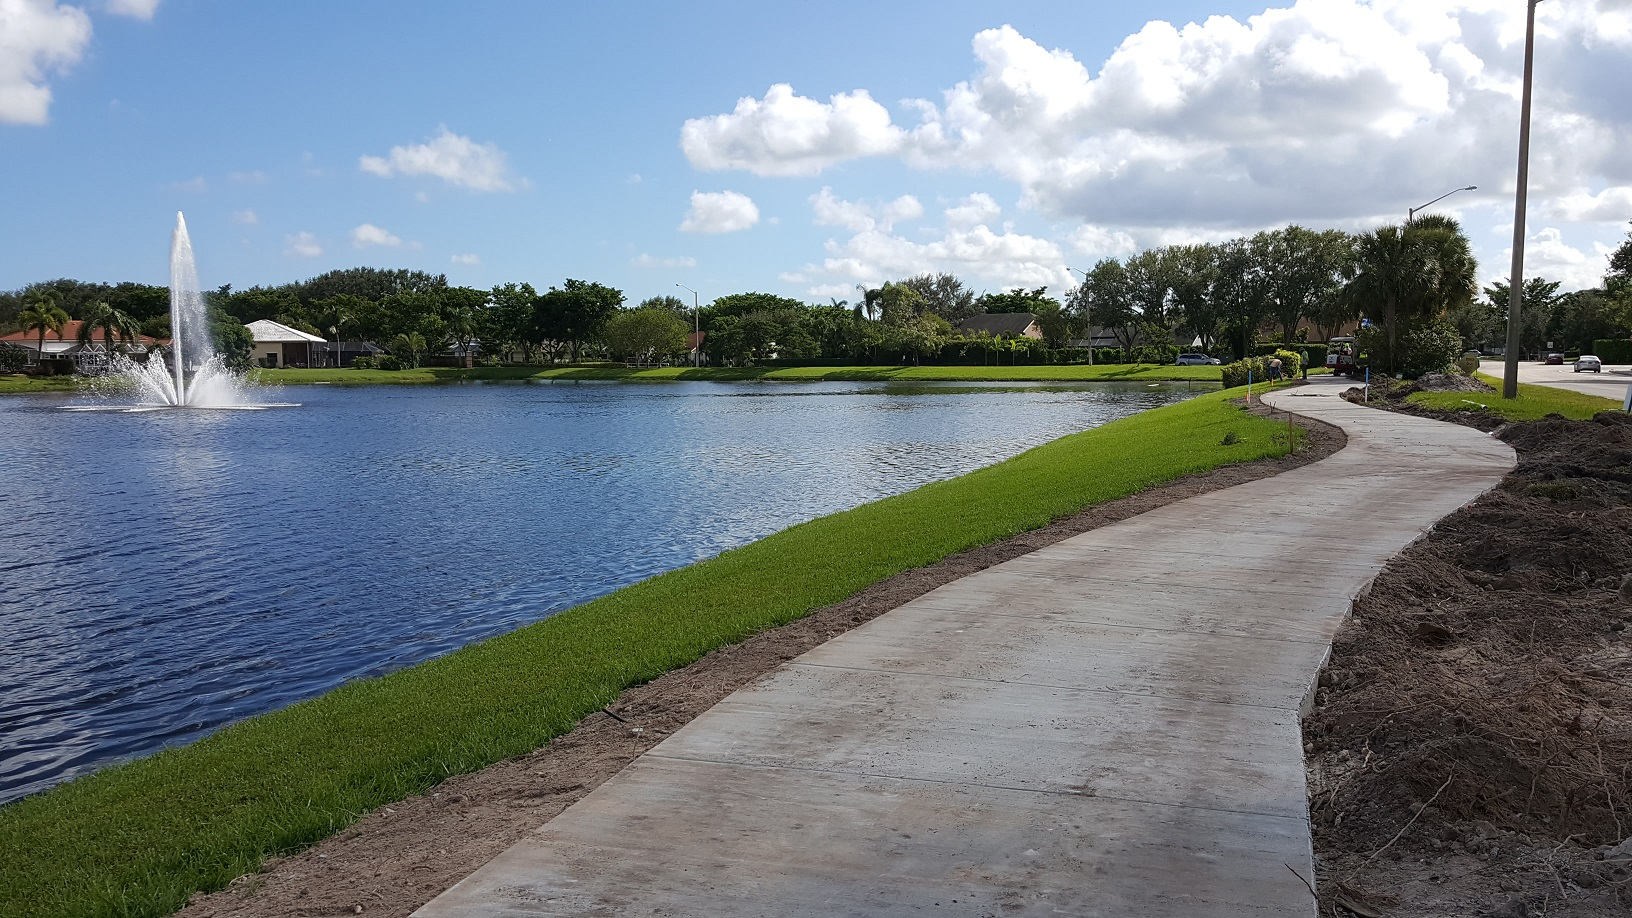 Paved walkway with lake fountain in distance